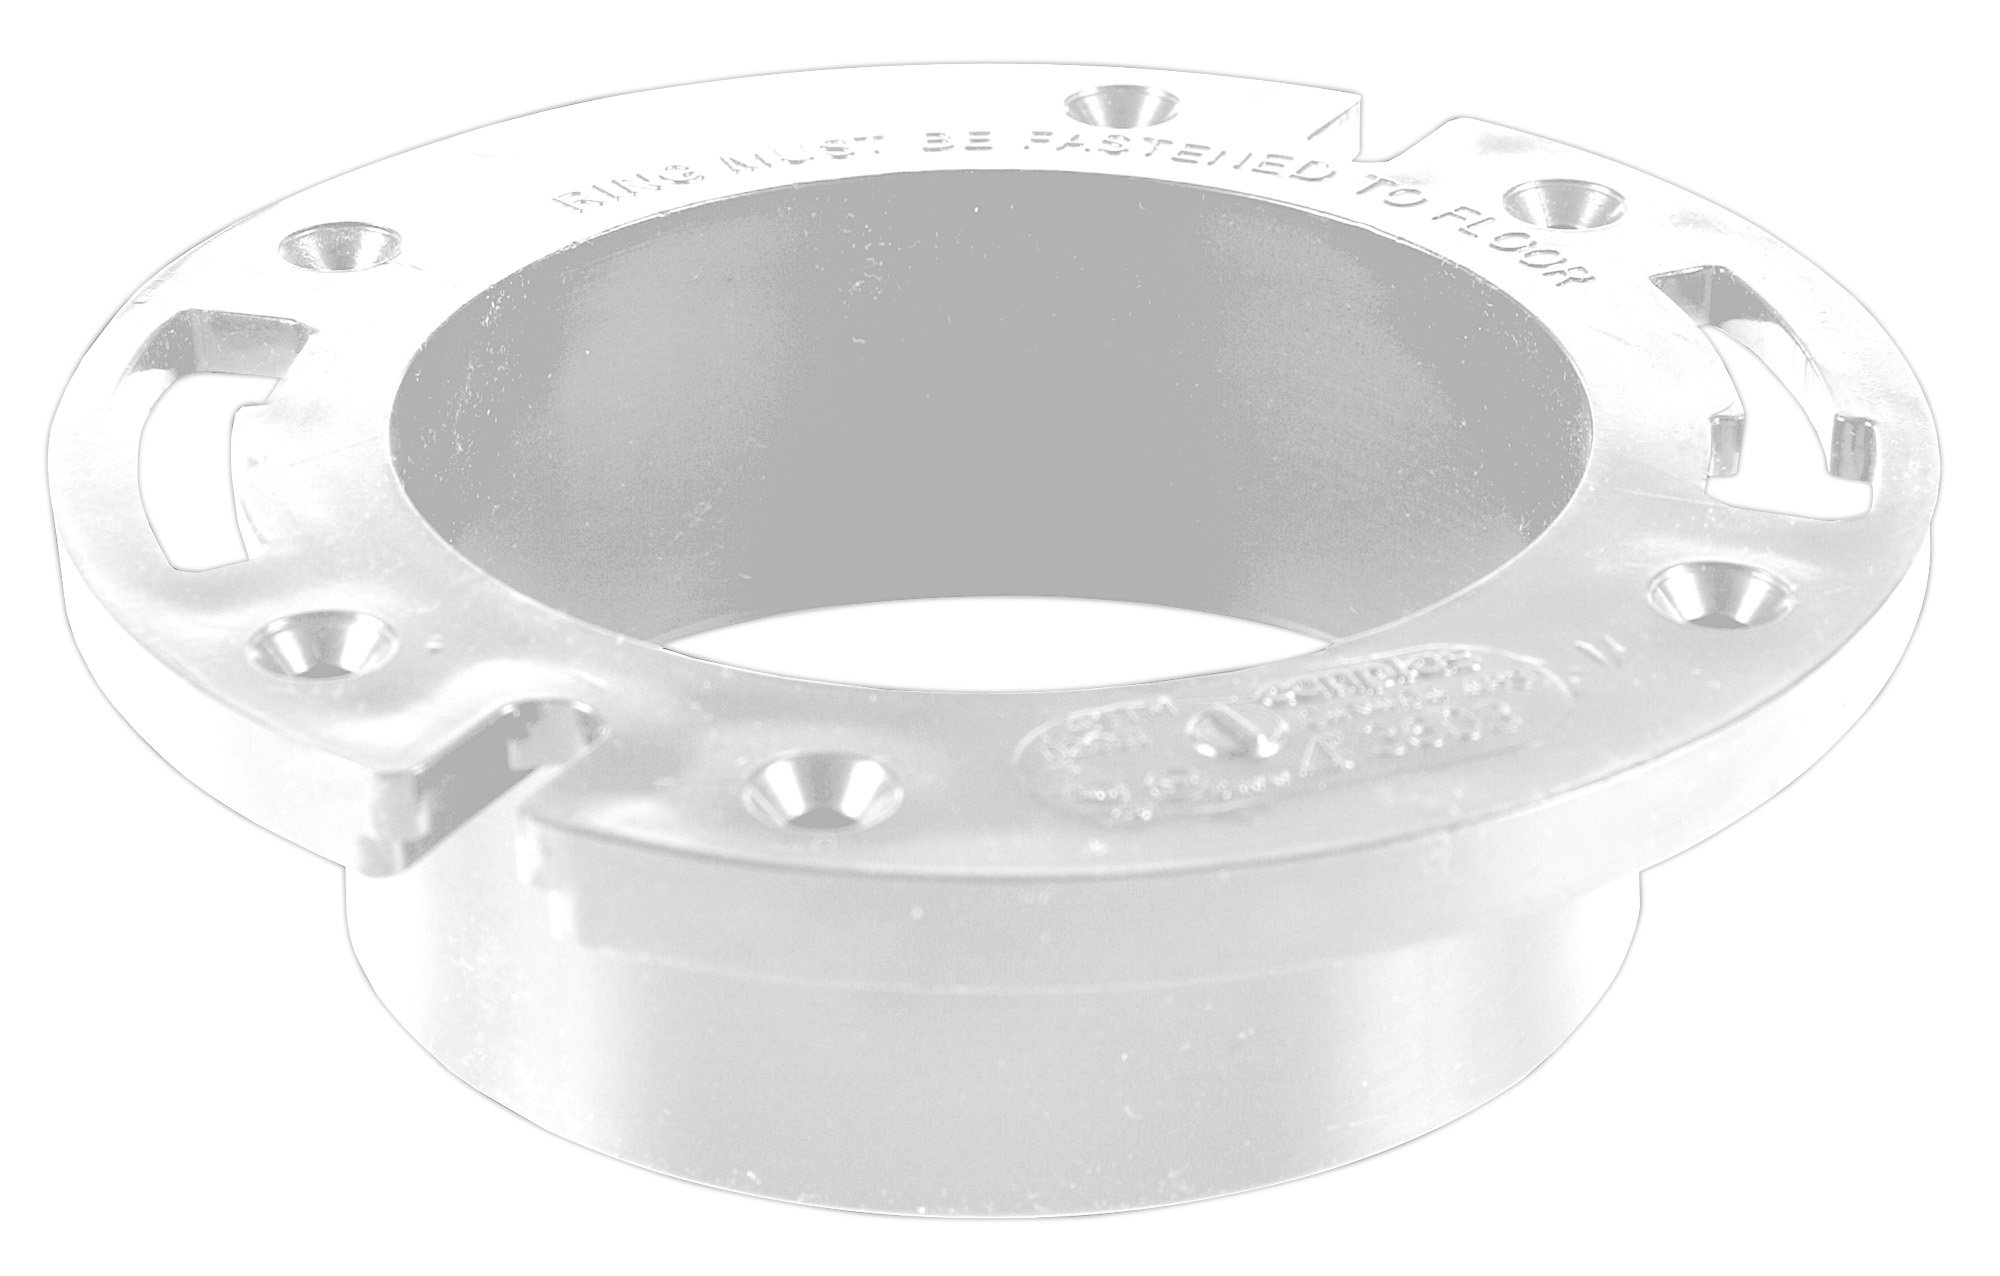 Oatey 43621 Over 4-Inch Closet Flange, PVC, without Test Cap, 4-Inch